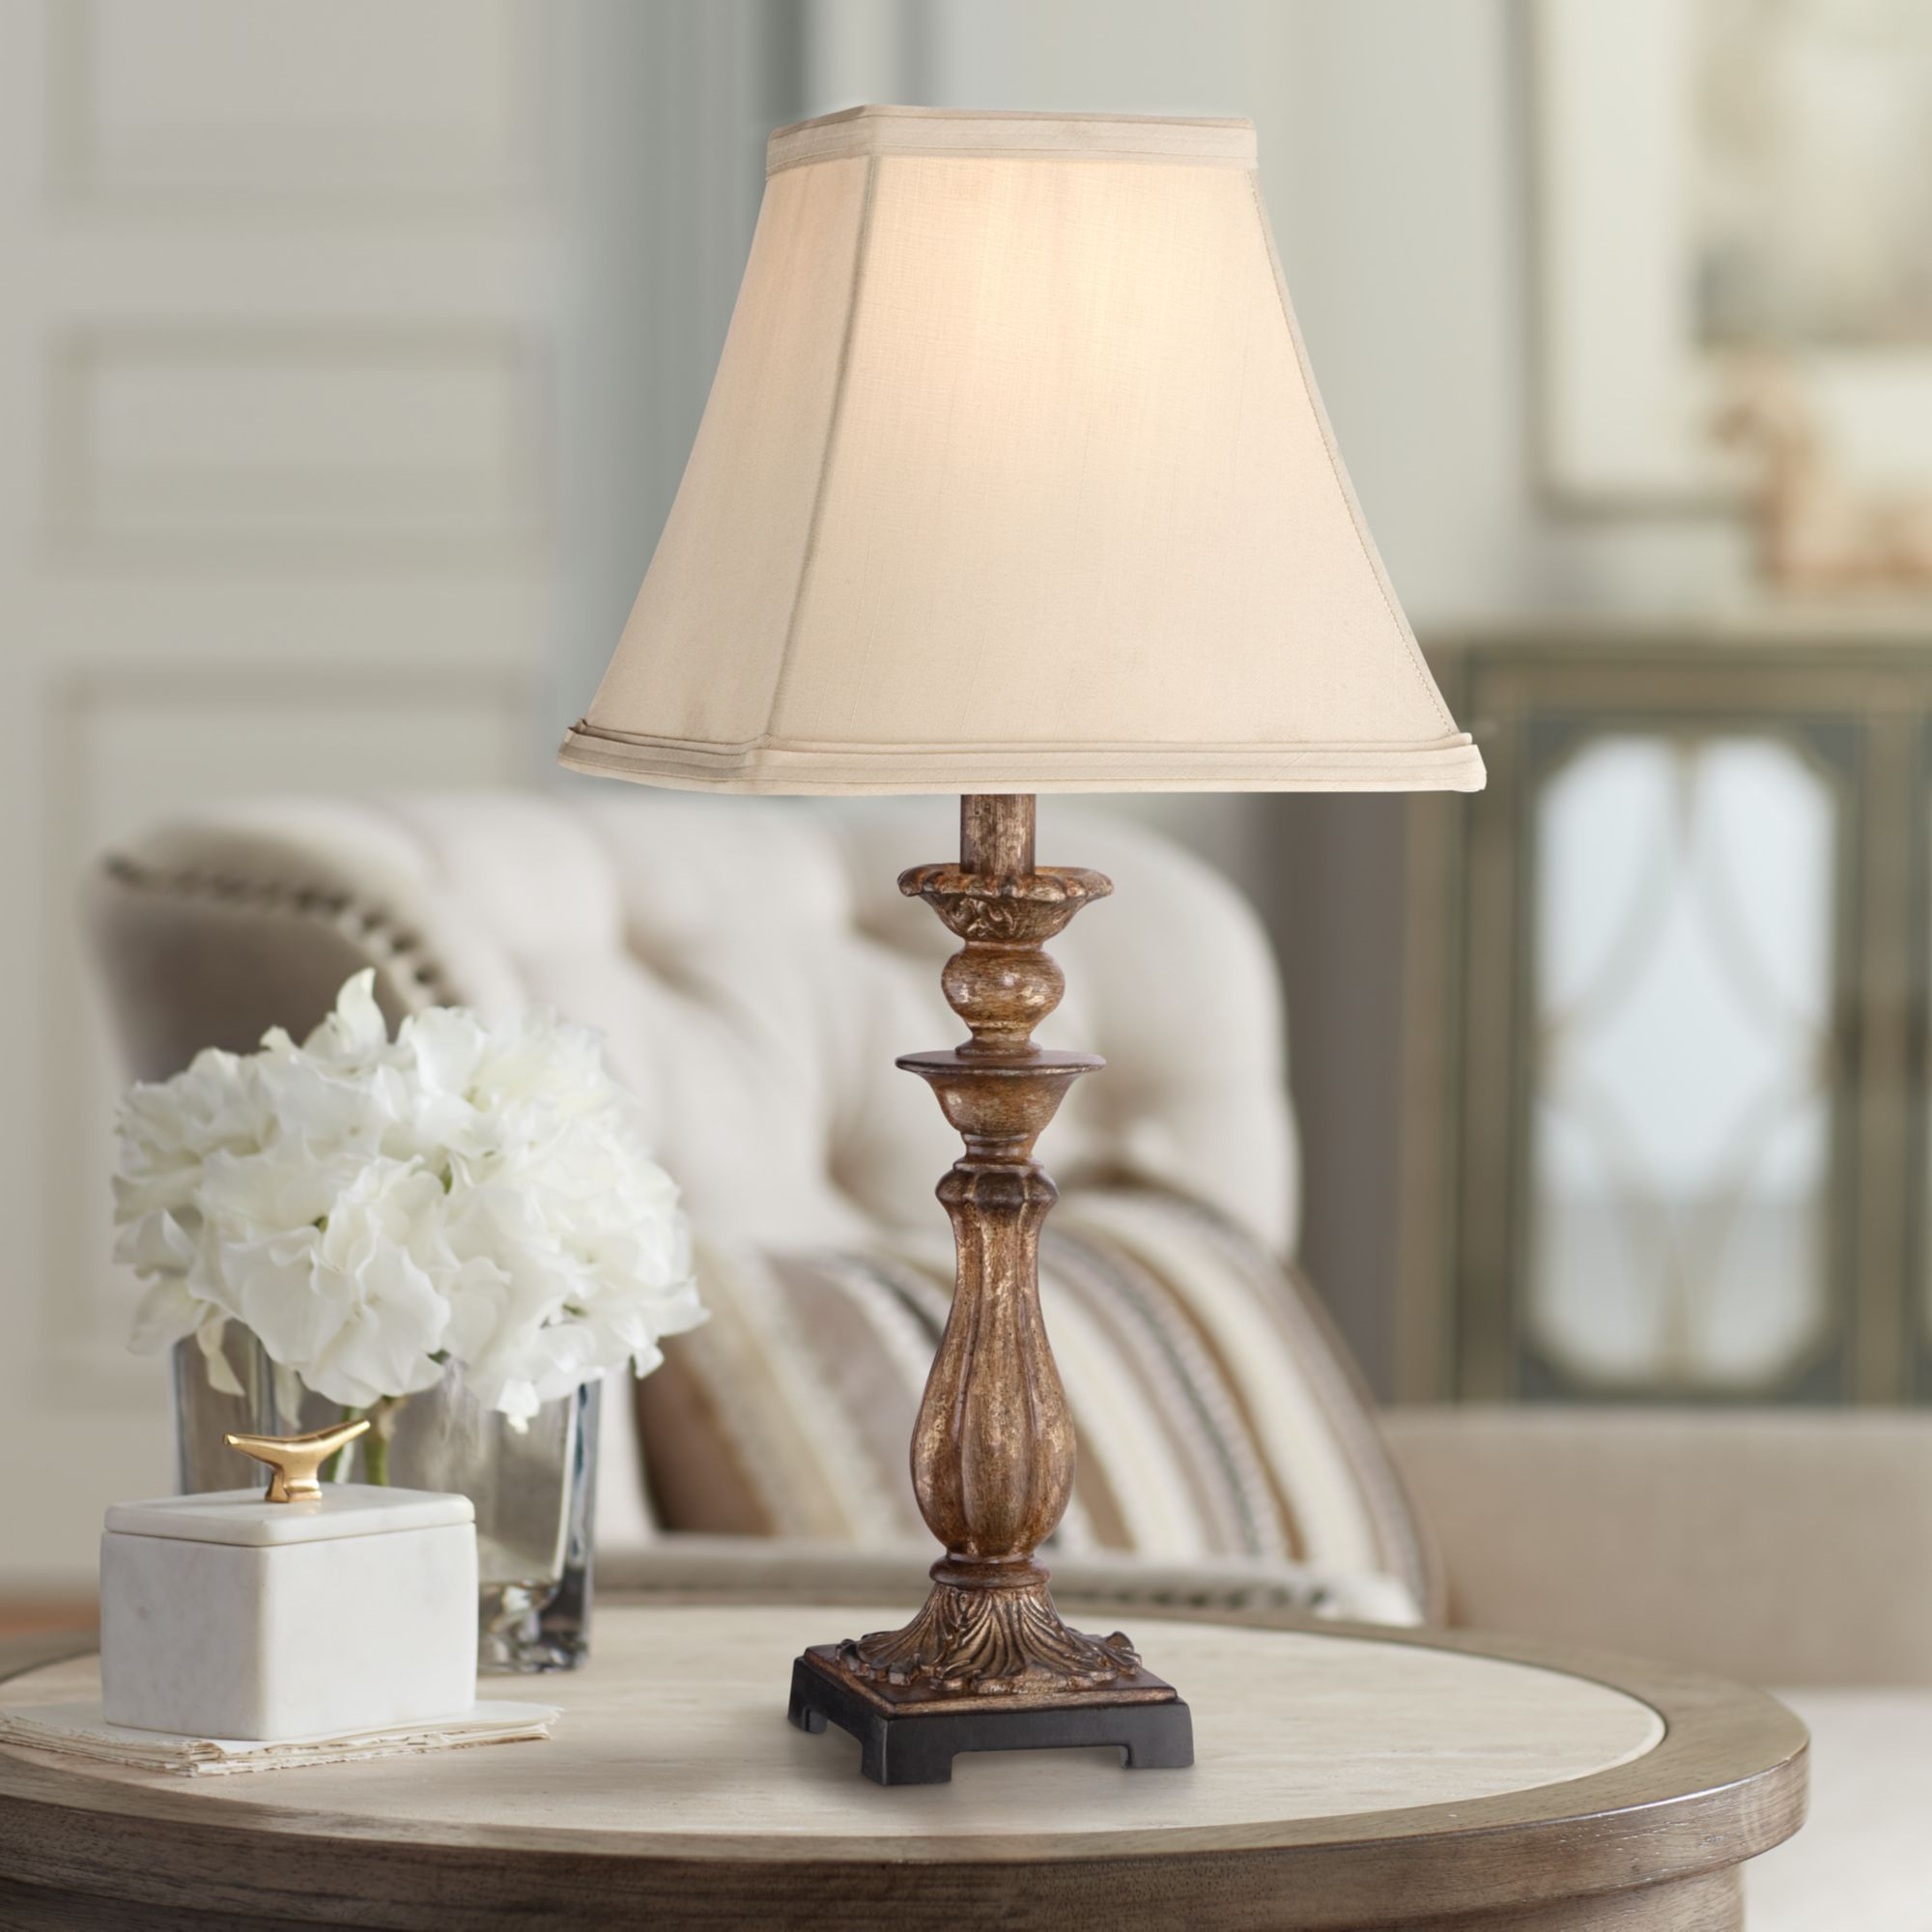 Regency Hill Cottage Accent Table Lamp 18 High Antique Distressed